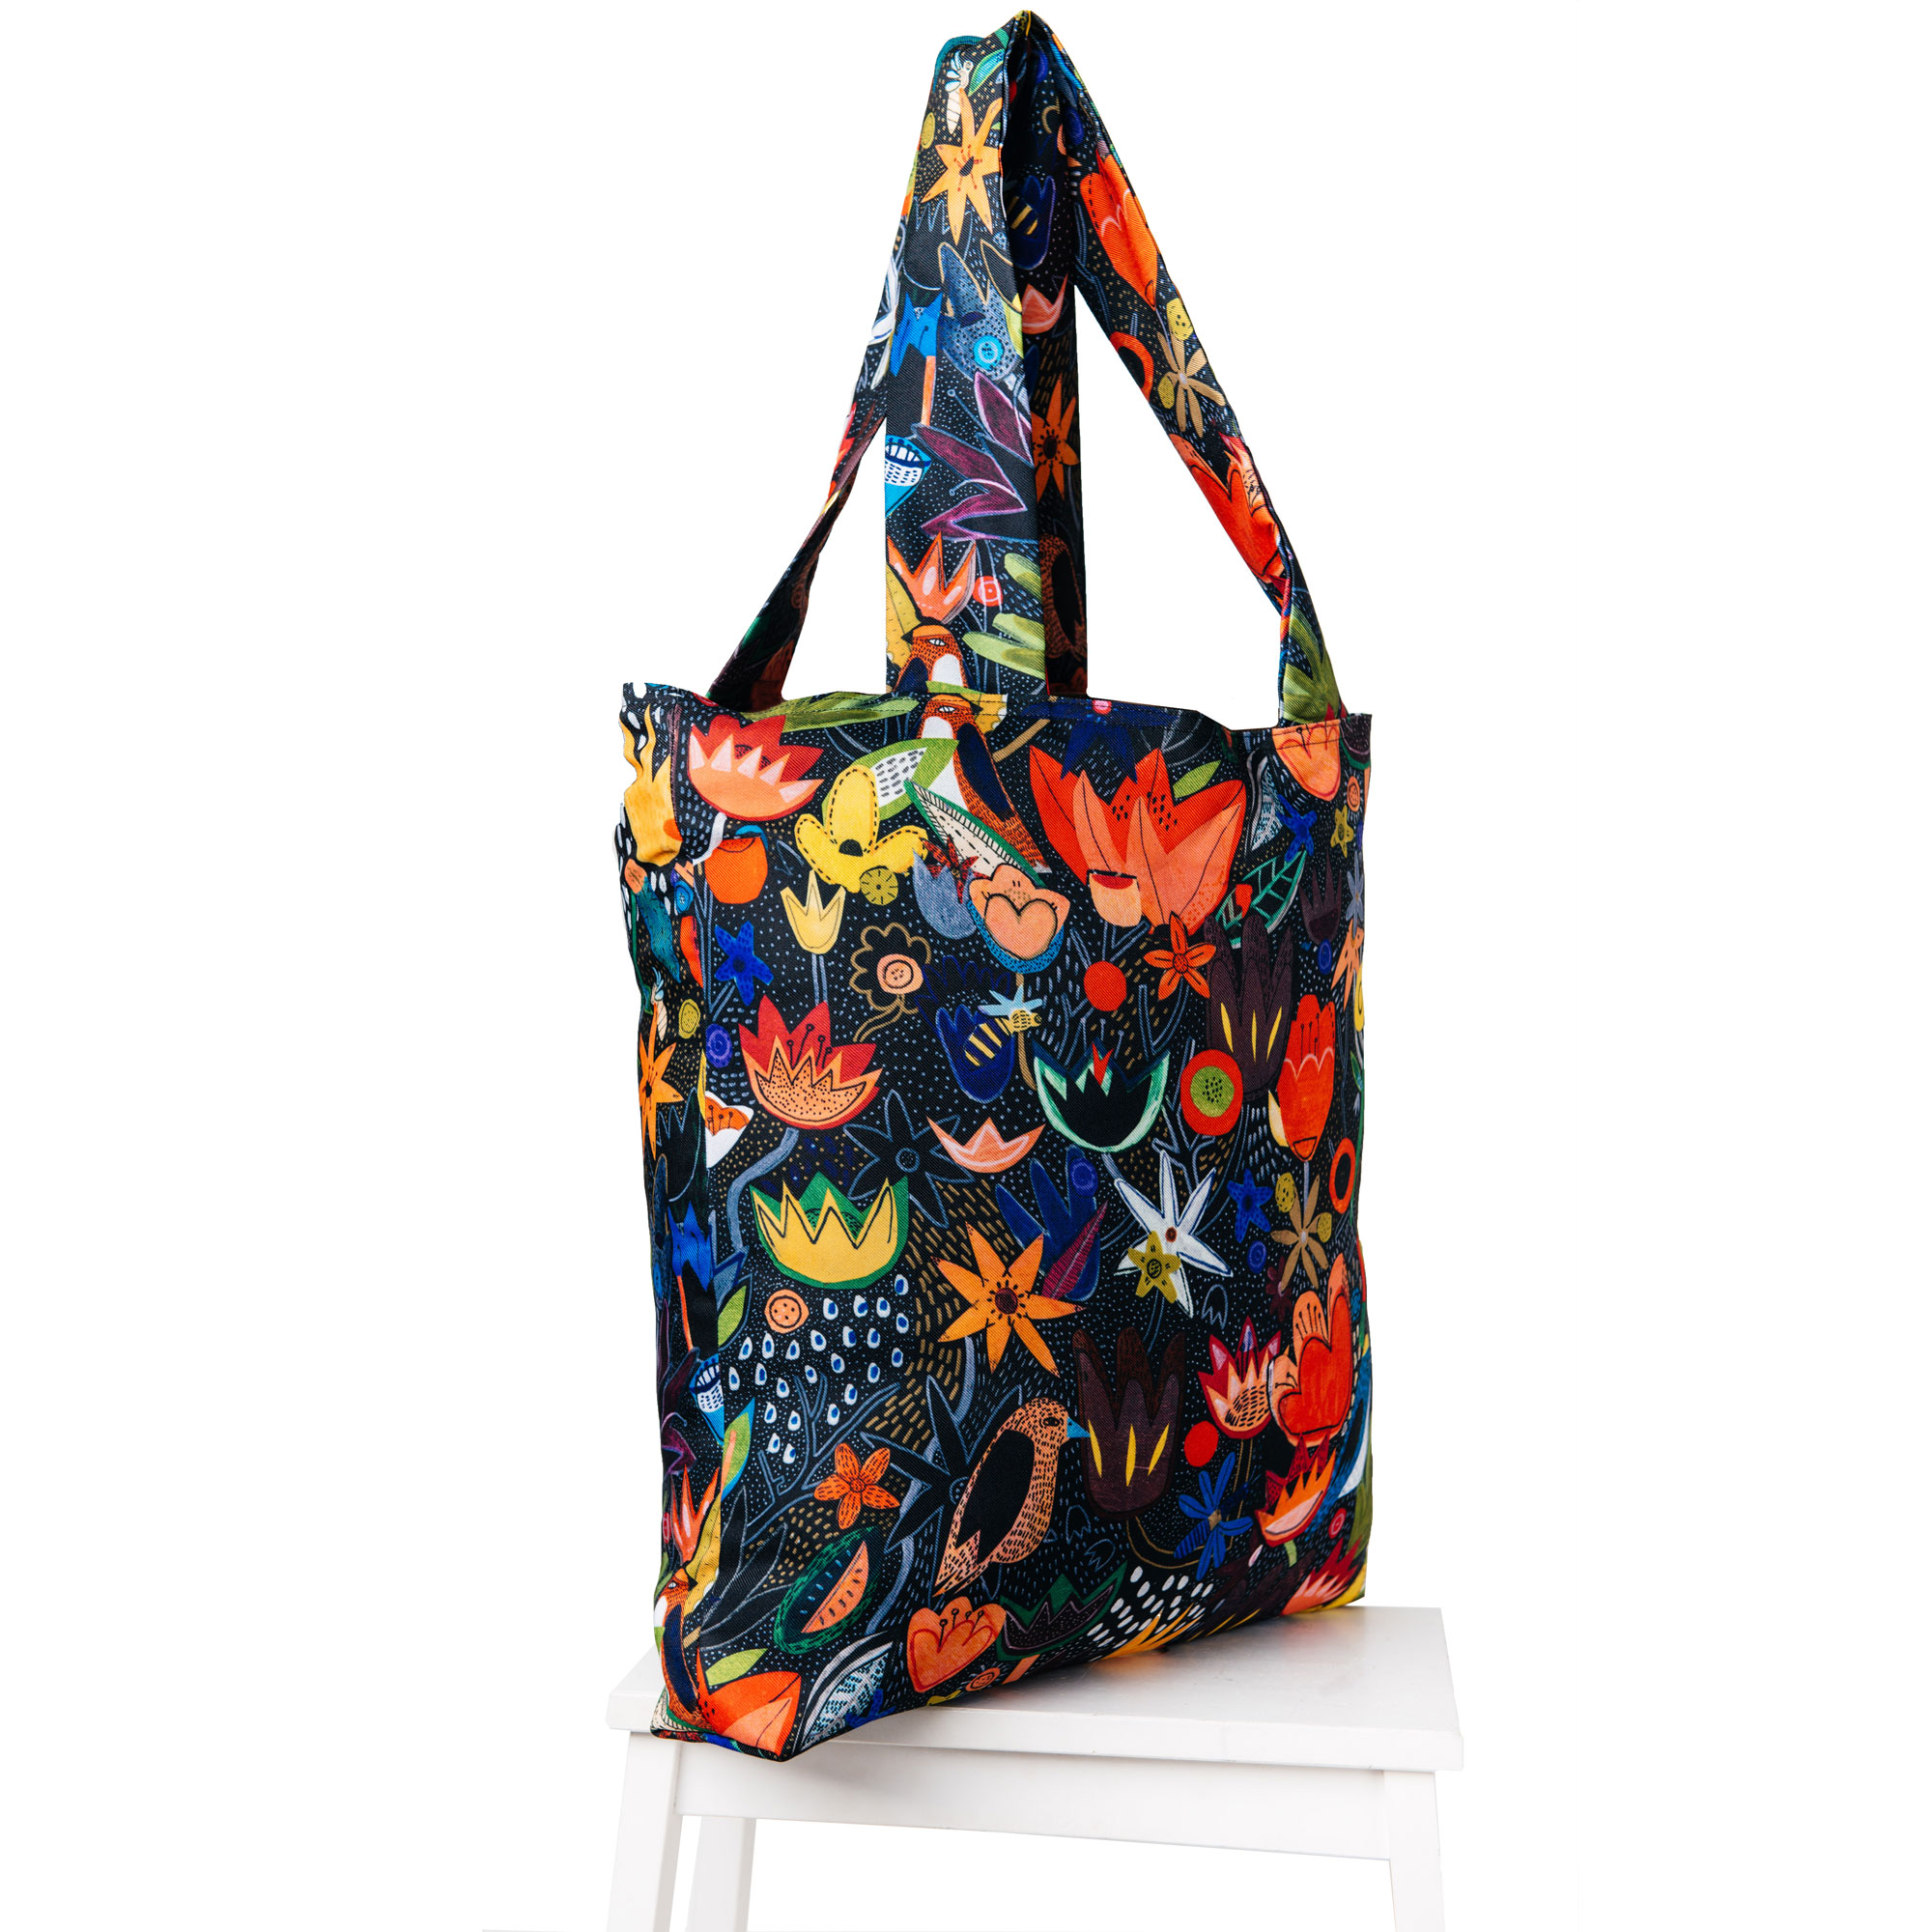 Torba-Colorful-Jungle-Bag-Cacofonia-handmade-paintings-flowers-birds-gift2